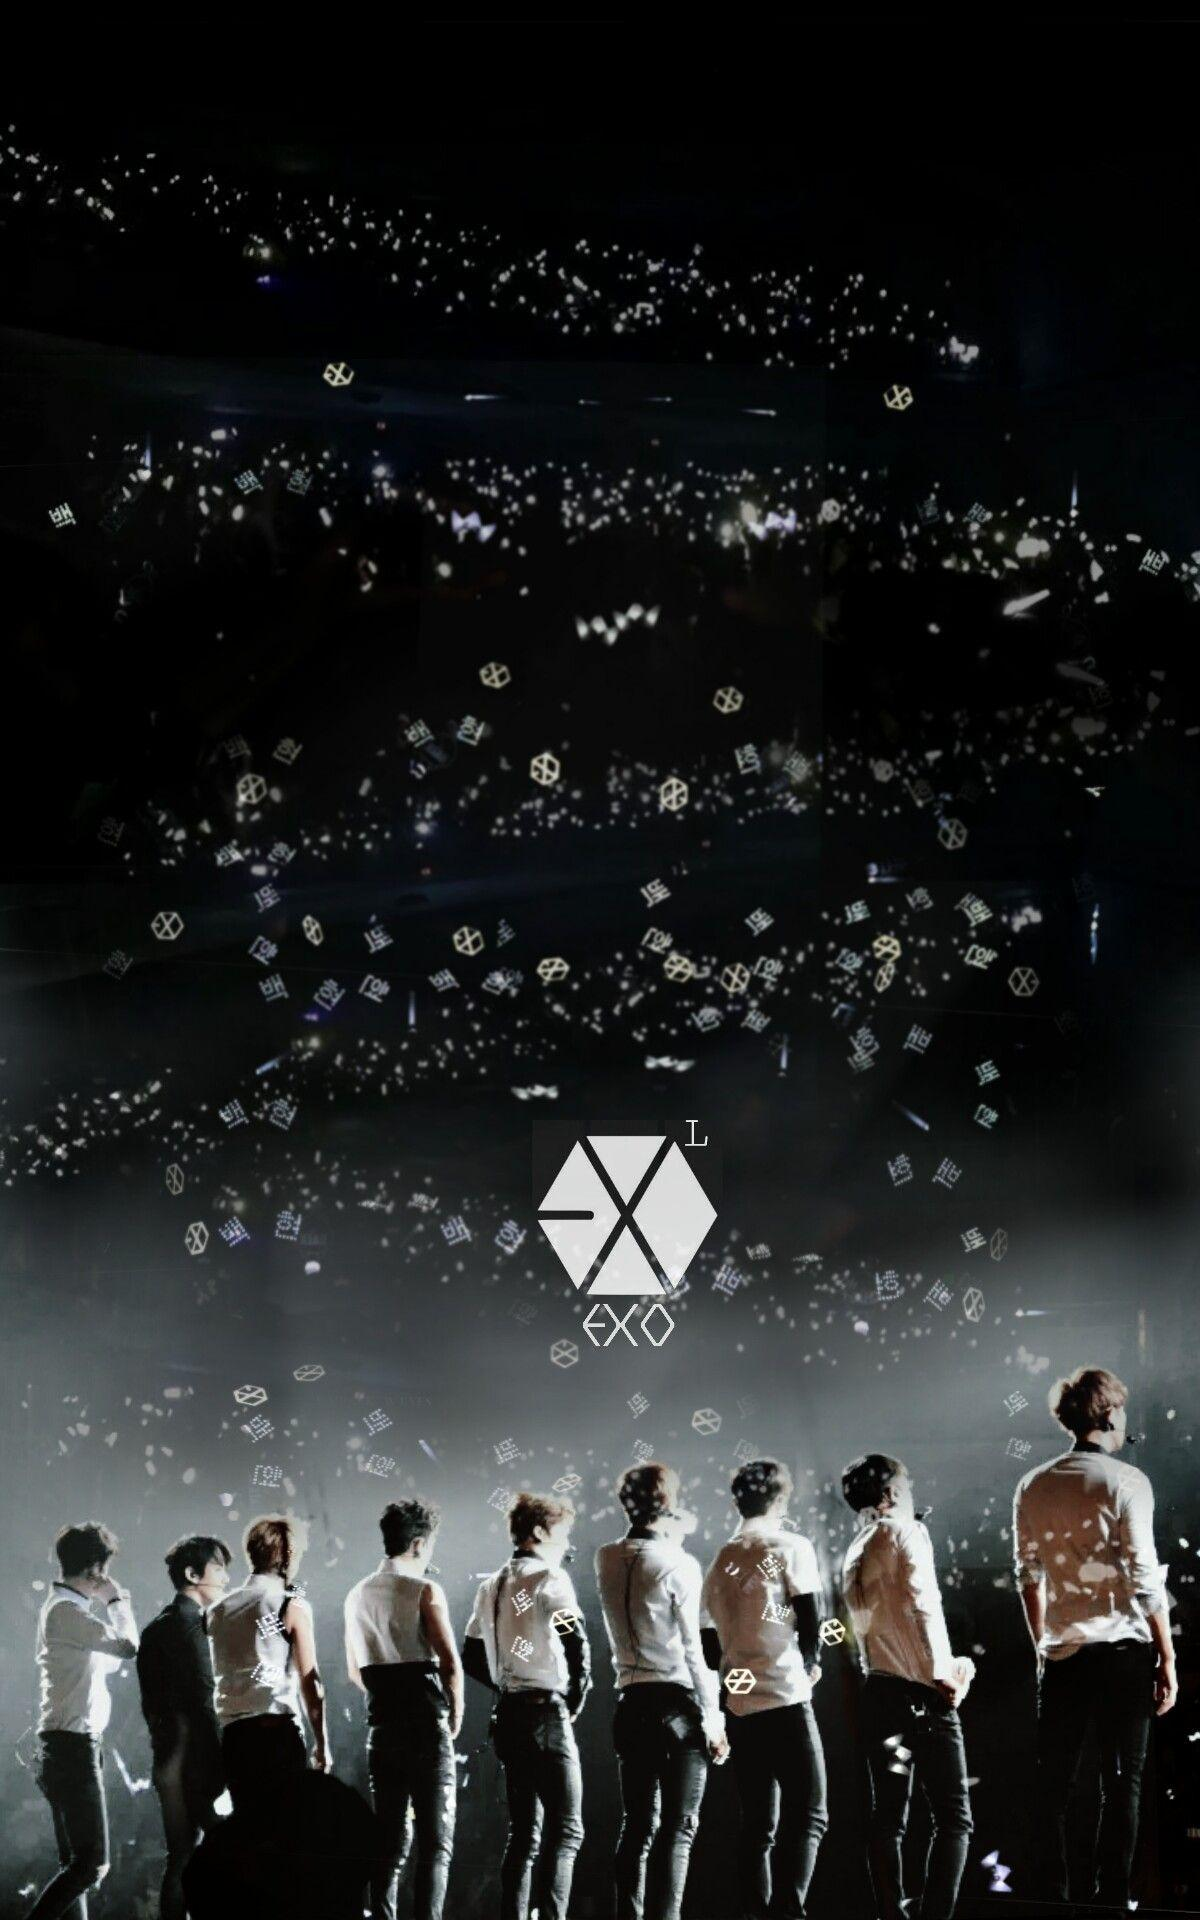 Exo Background Wallpaper